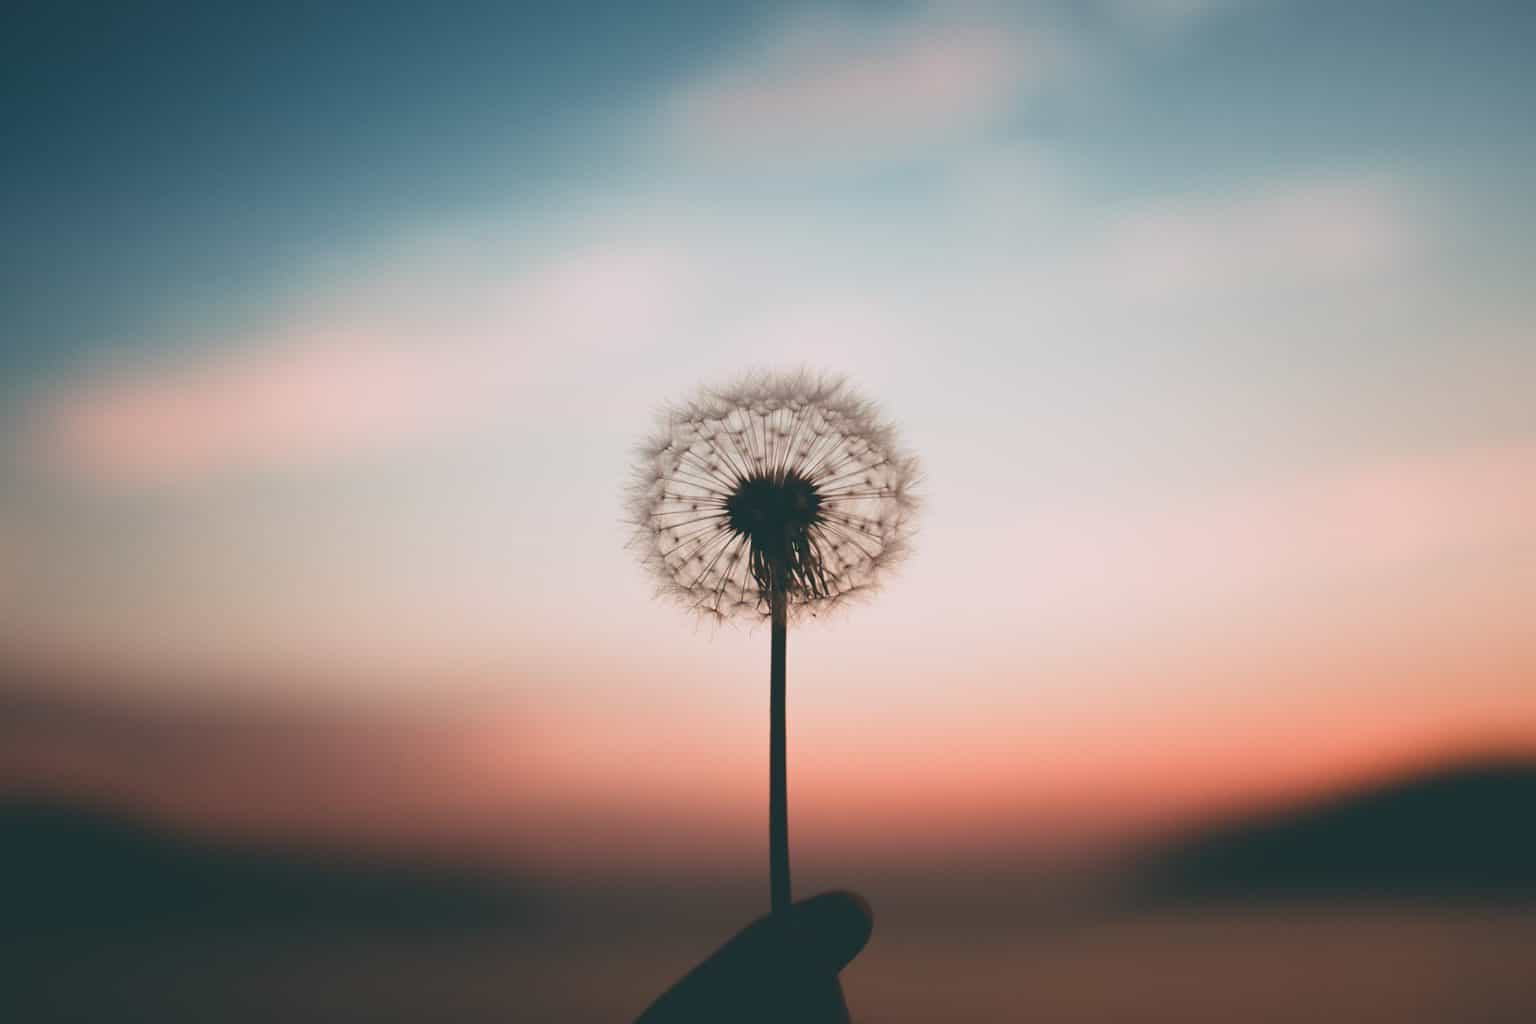 """""""The secret of health for both mind and body is not to mourn for the past, not to worry about the future, or not to anticipate troubles, but to live in the present moment wisely and earnestly."""" – Buddha"""